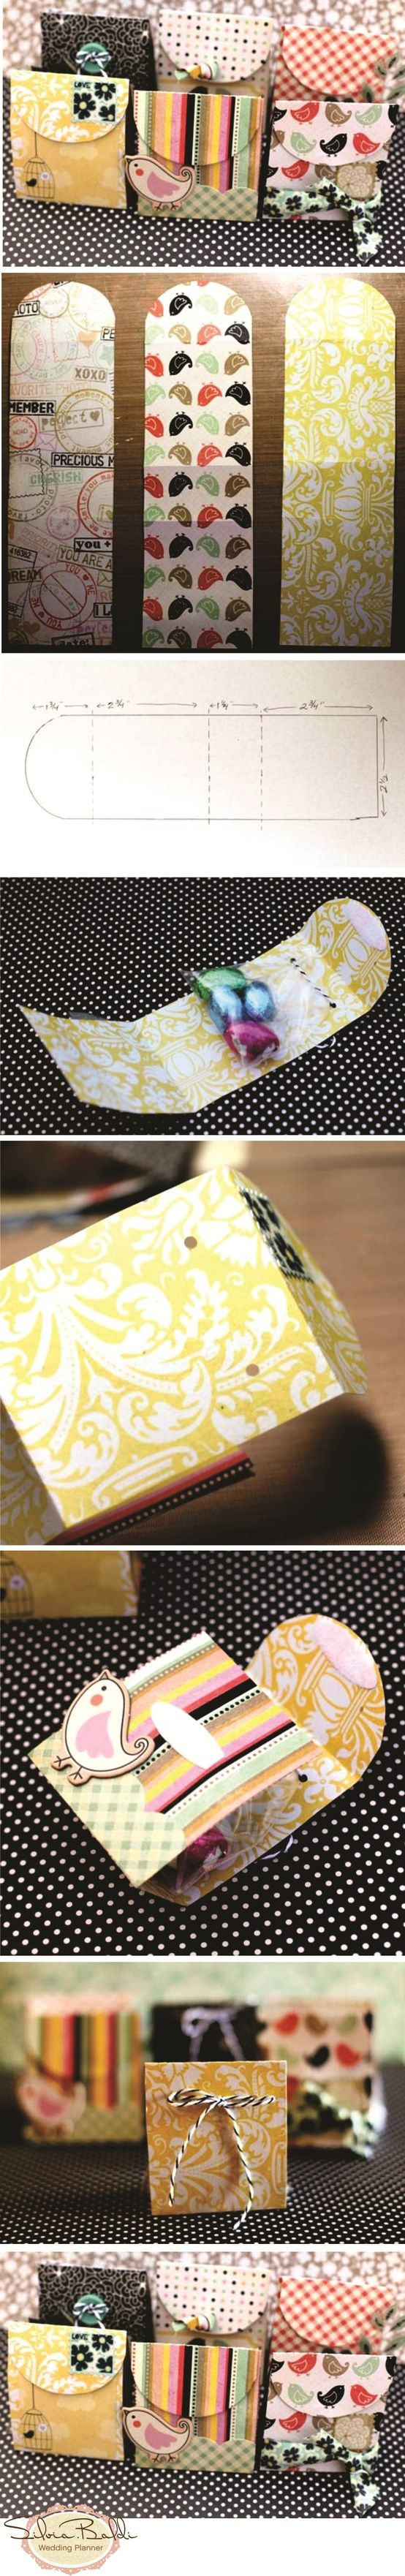 Diy gift boxes do it yourself pins crafty ideas pinterest diy gift boxes do it yourself pins solutioingenieria Gallery